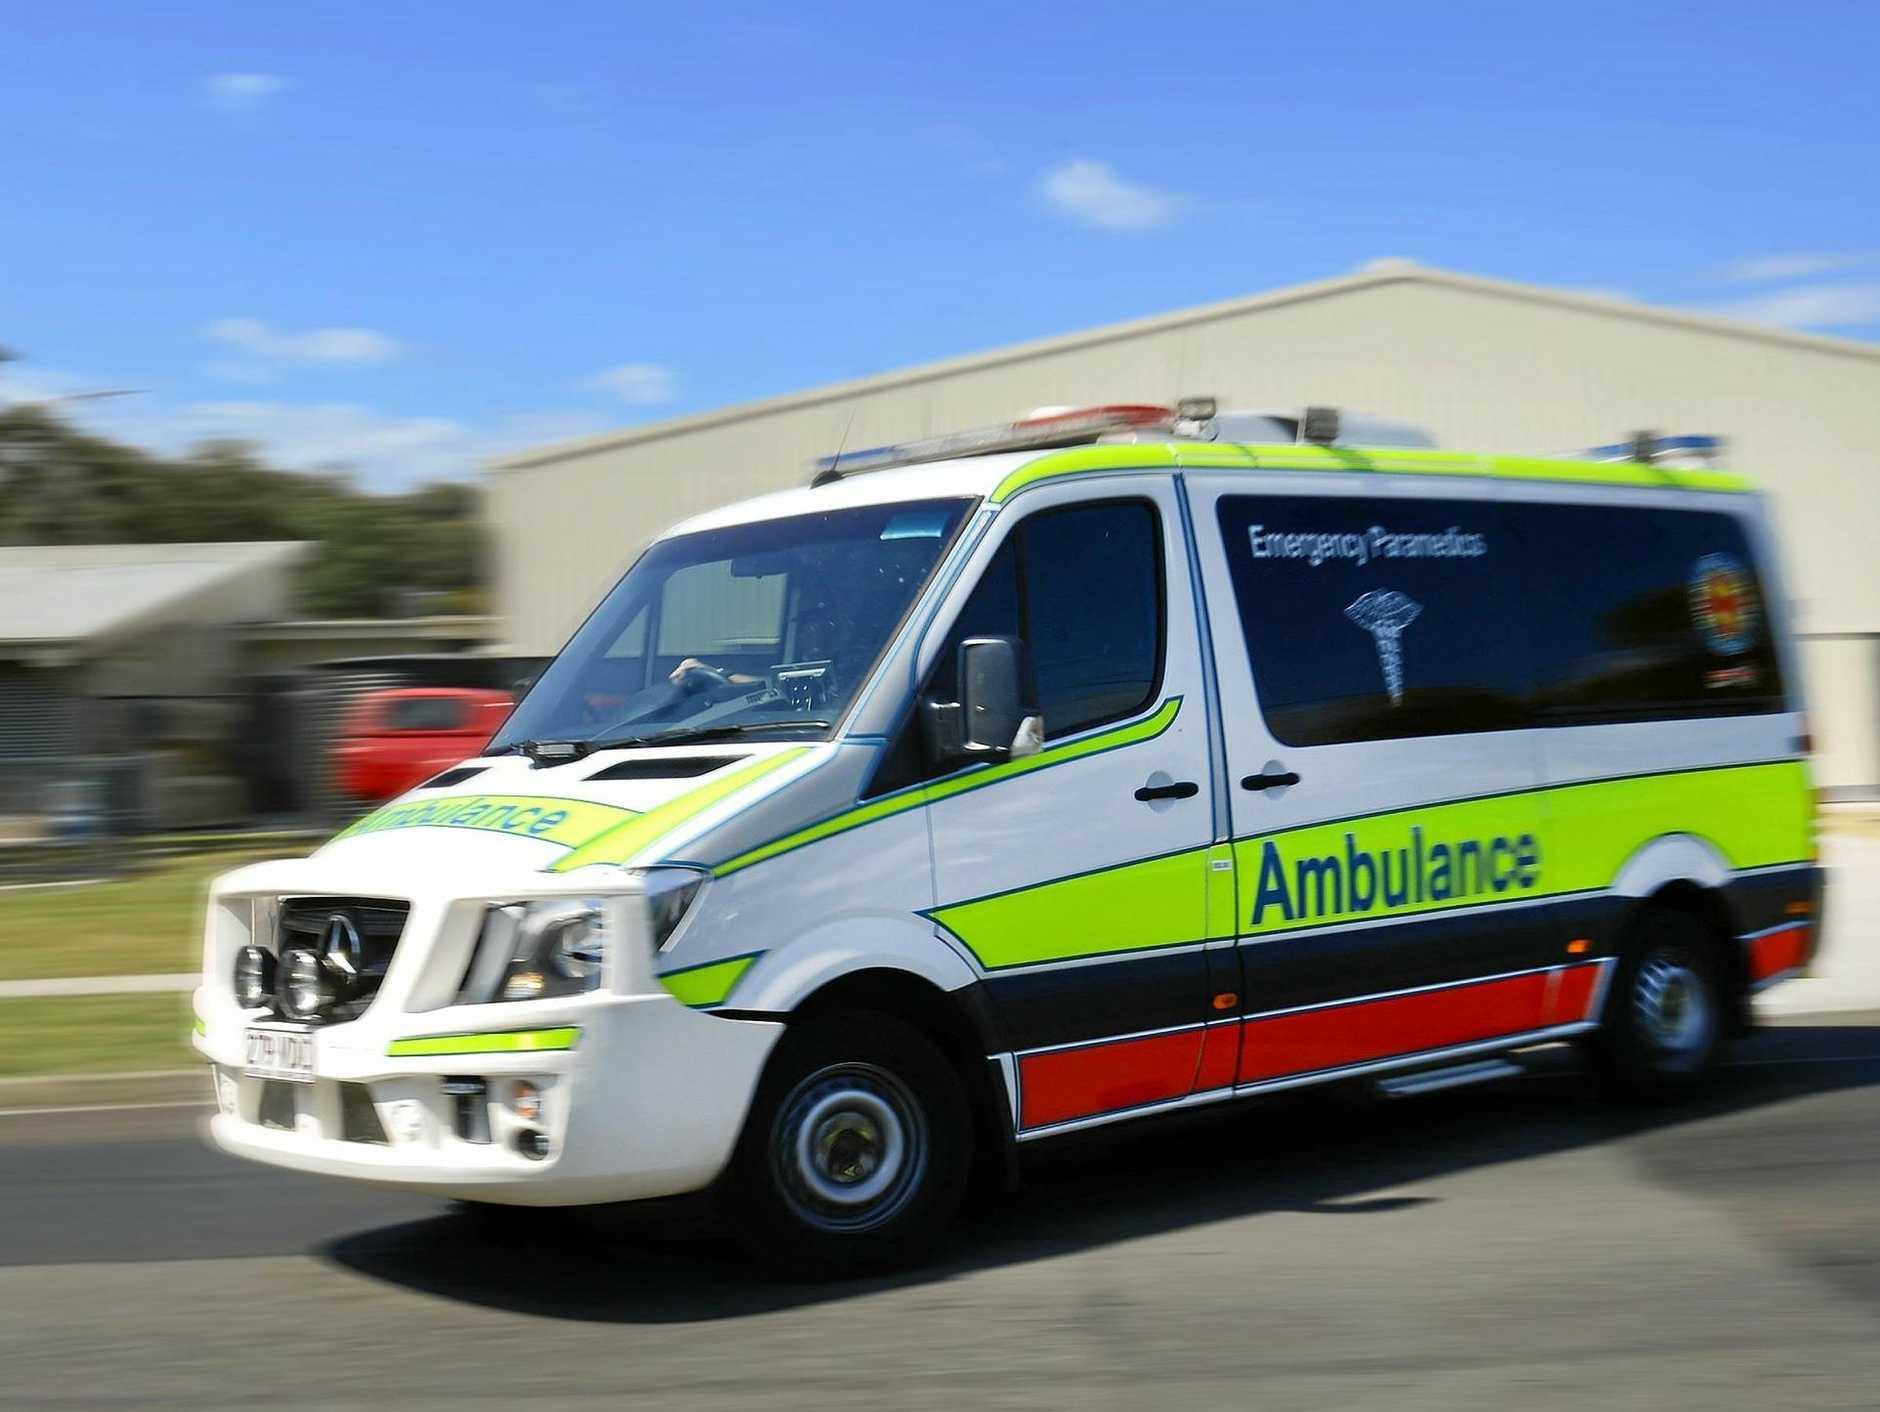 Paramedics have rushed to a location at Maleny where a man has suffered injuries from falling 3 metres from a ladder.